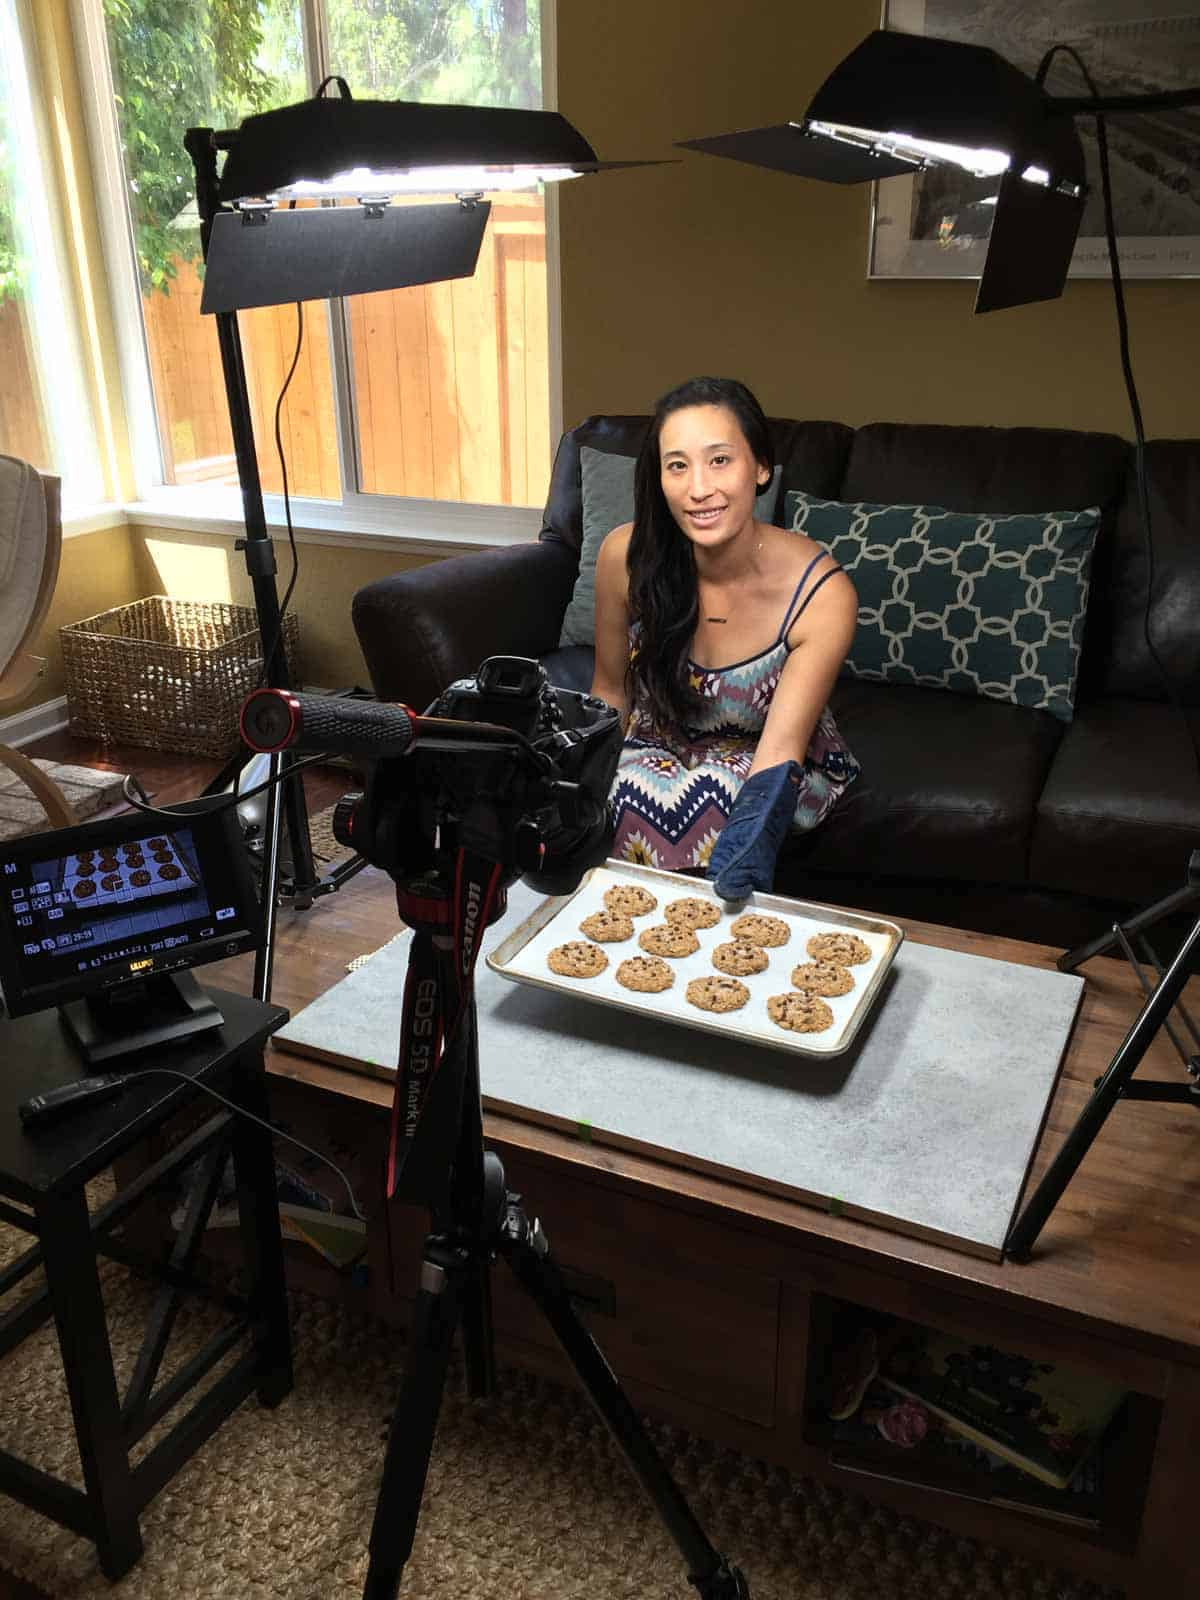 jessica-behind-the-camera-shooting-cookie-video